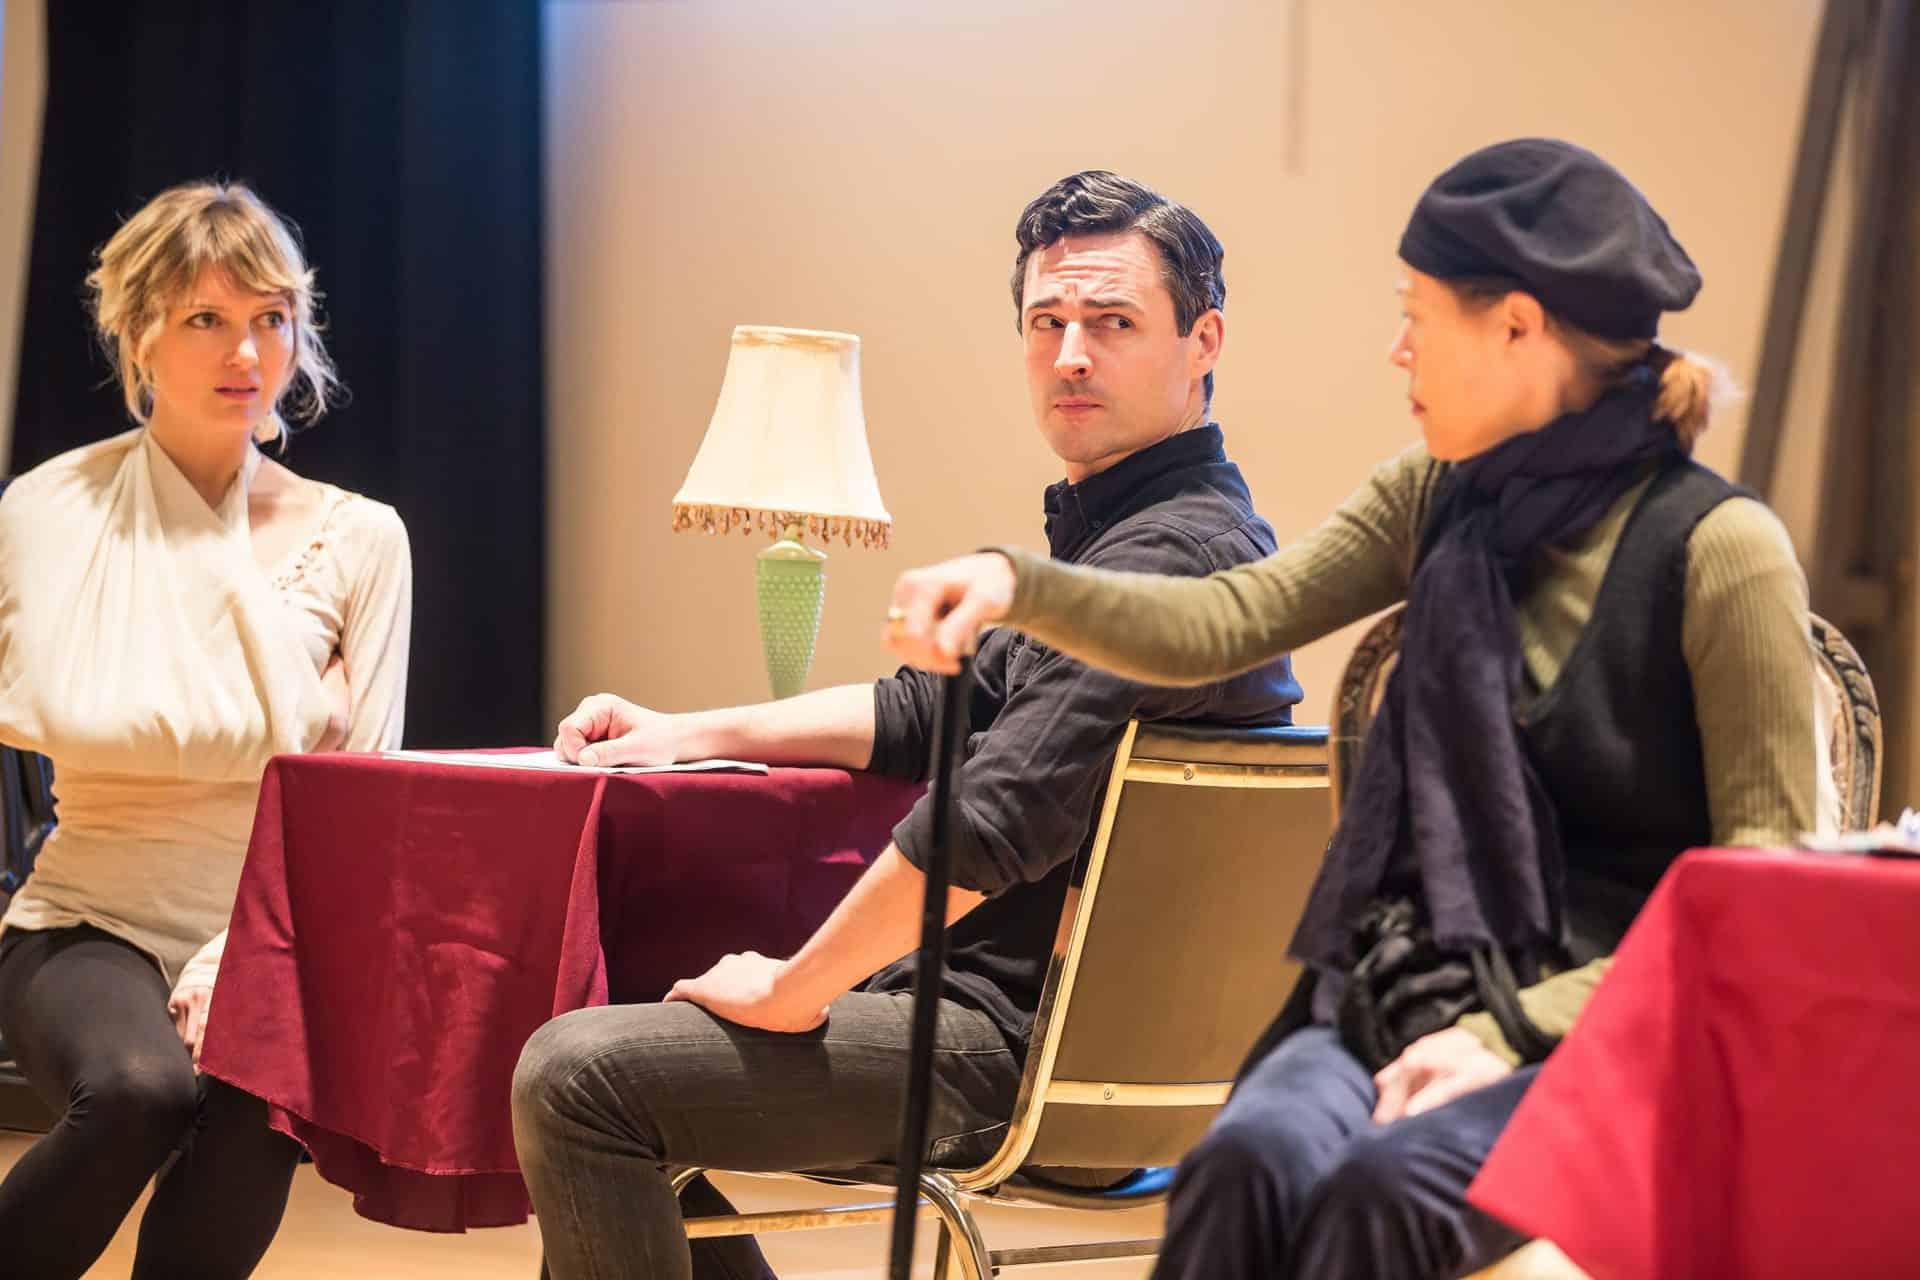 (l-r) Susannah Hoffman, Max Von Essen, and Veanne Cox in reherasals for Murder on the Orient Express. Photo by Matt Pilsner sm